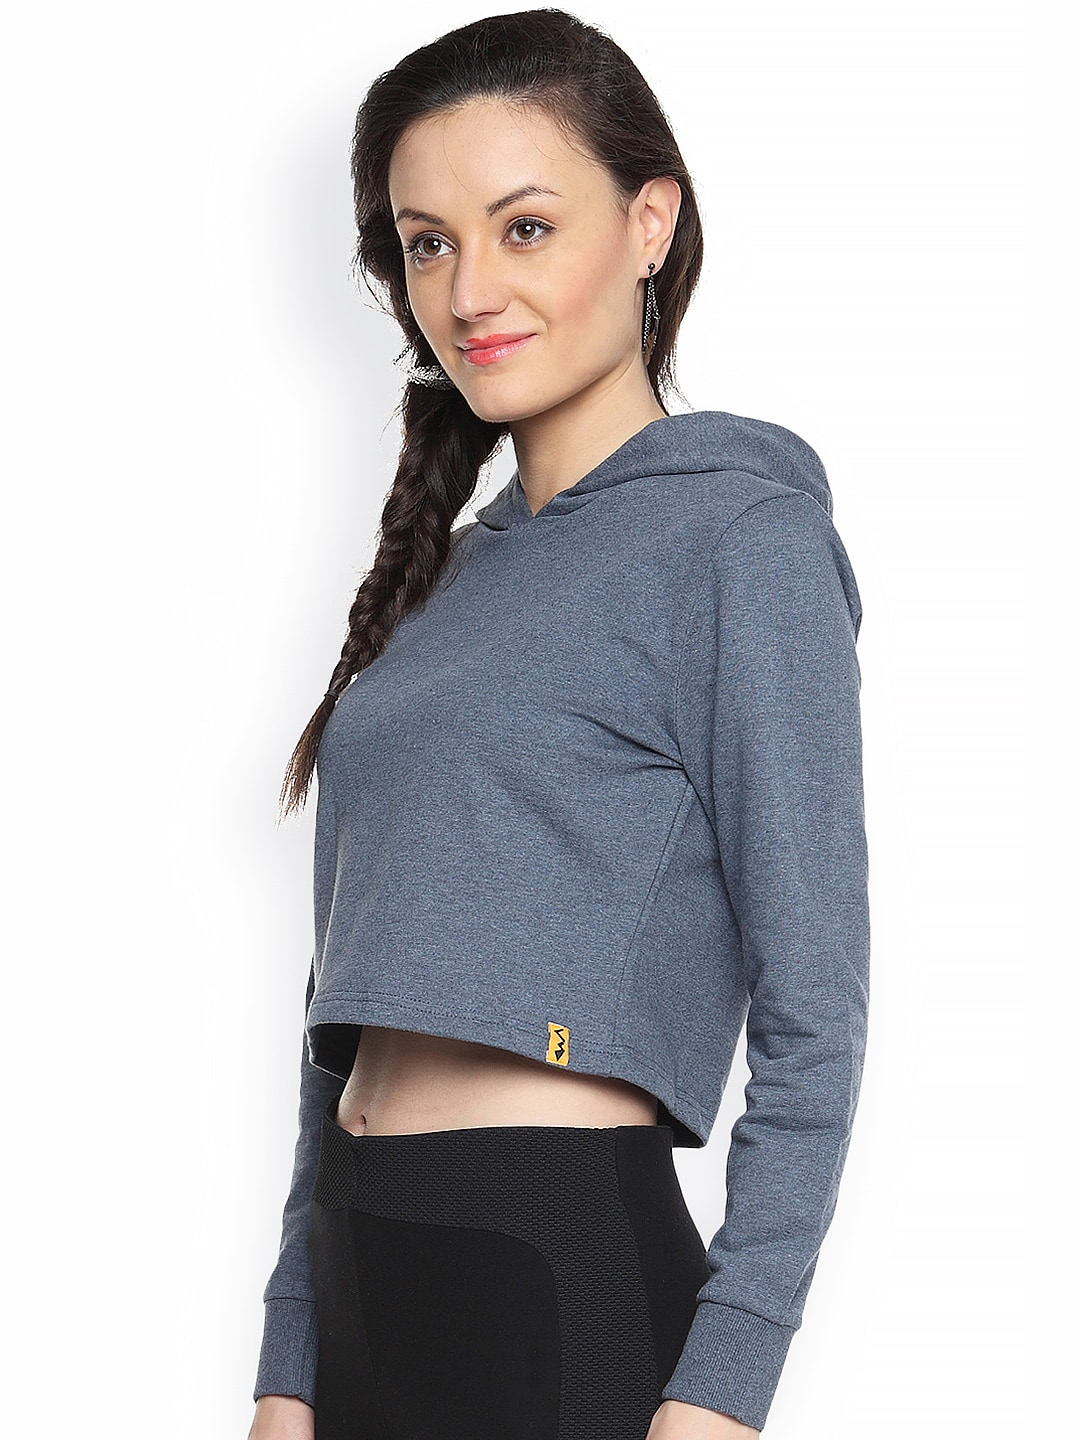 Campus Sutra Blue Cropped Sweatshirt